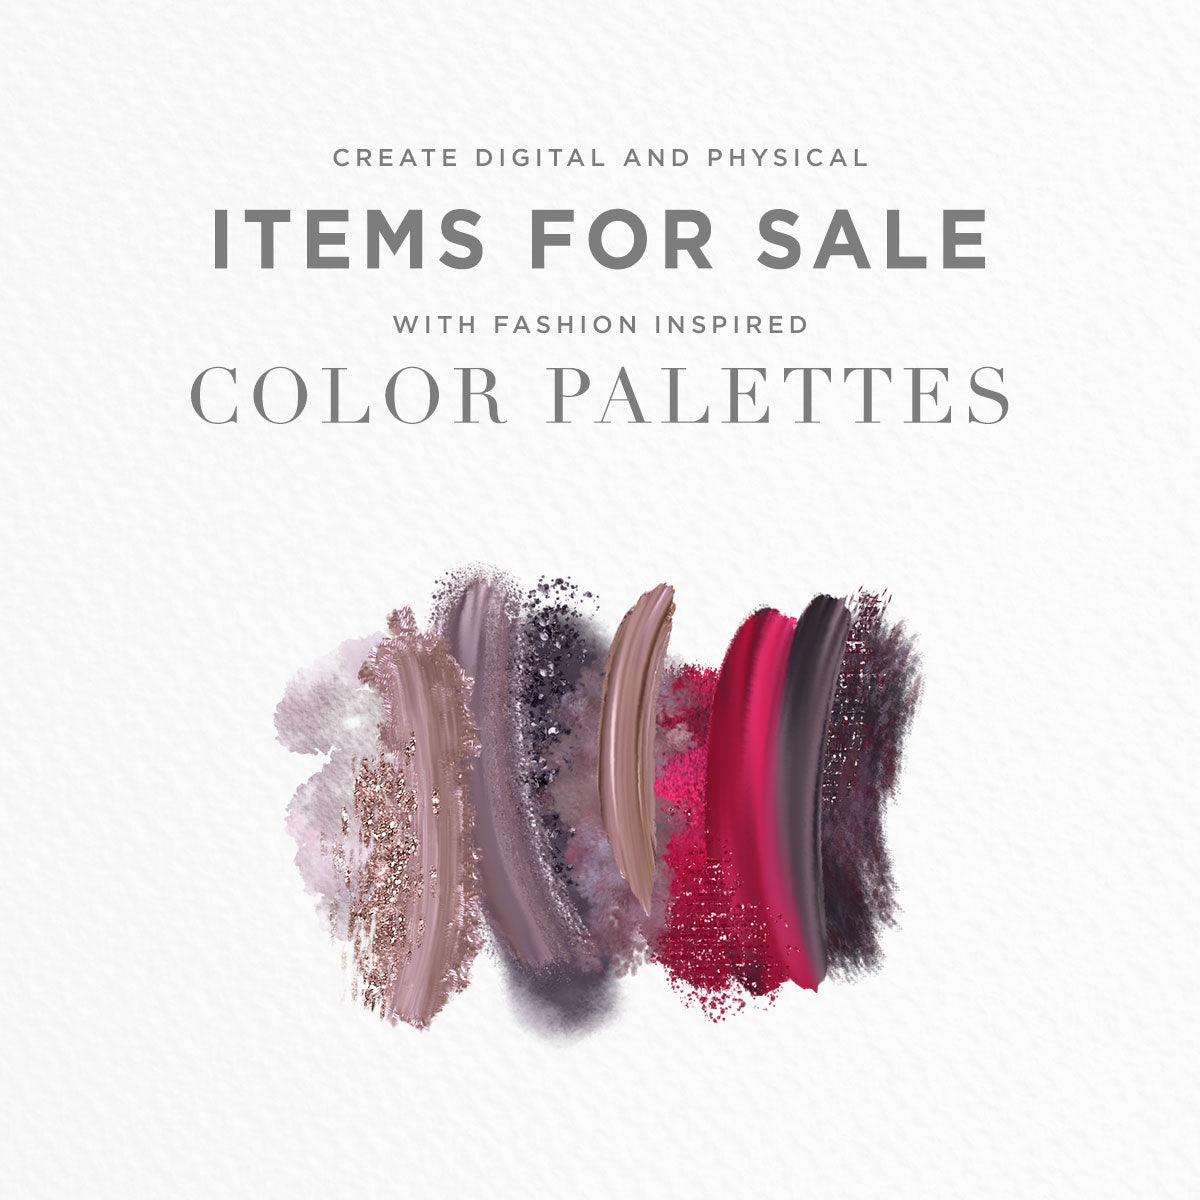 create items for sale using color palettes